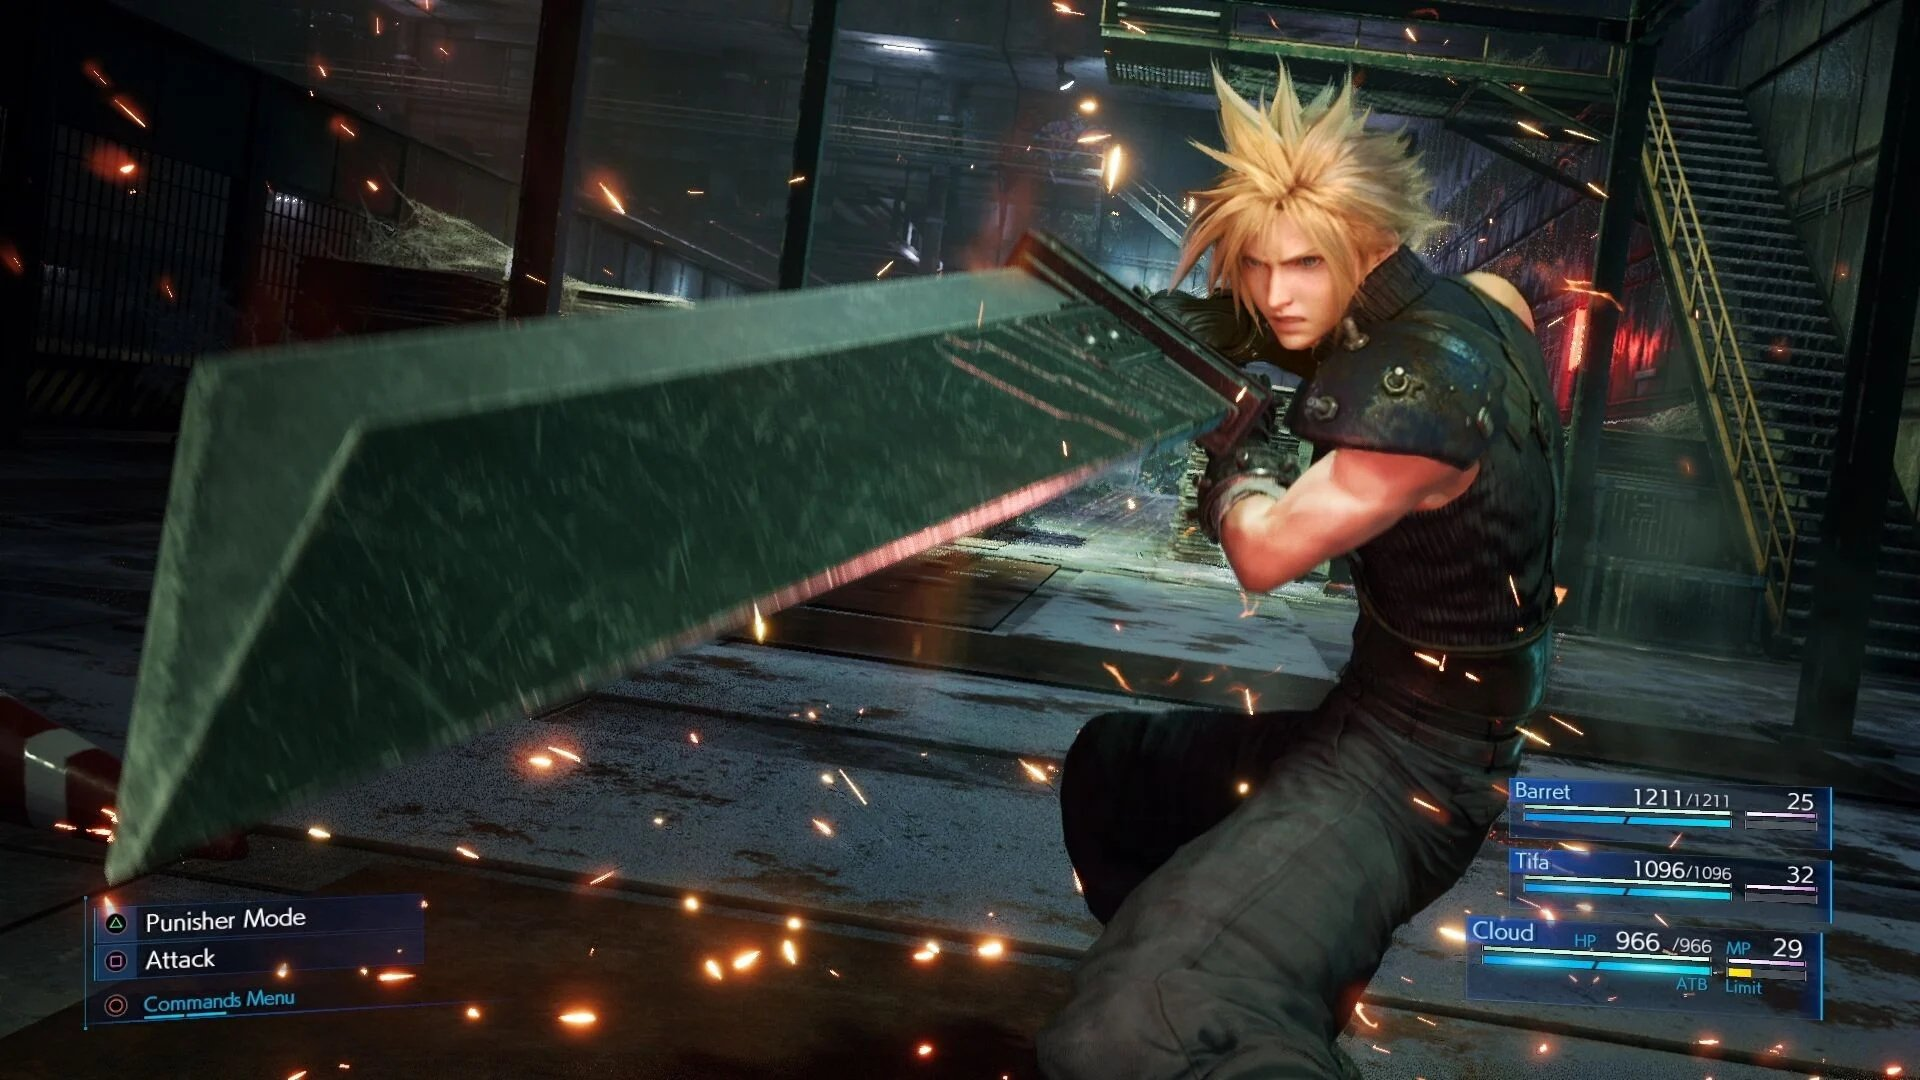 Final Fantasy Vii Remake S Launch Has Been A Disaster In Some